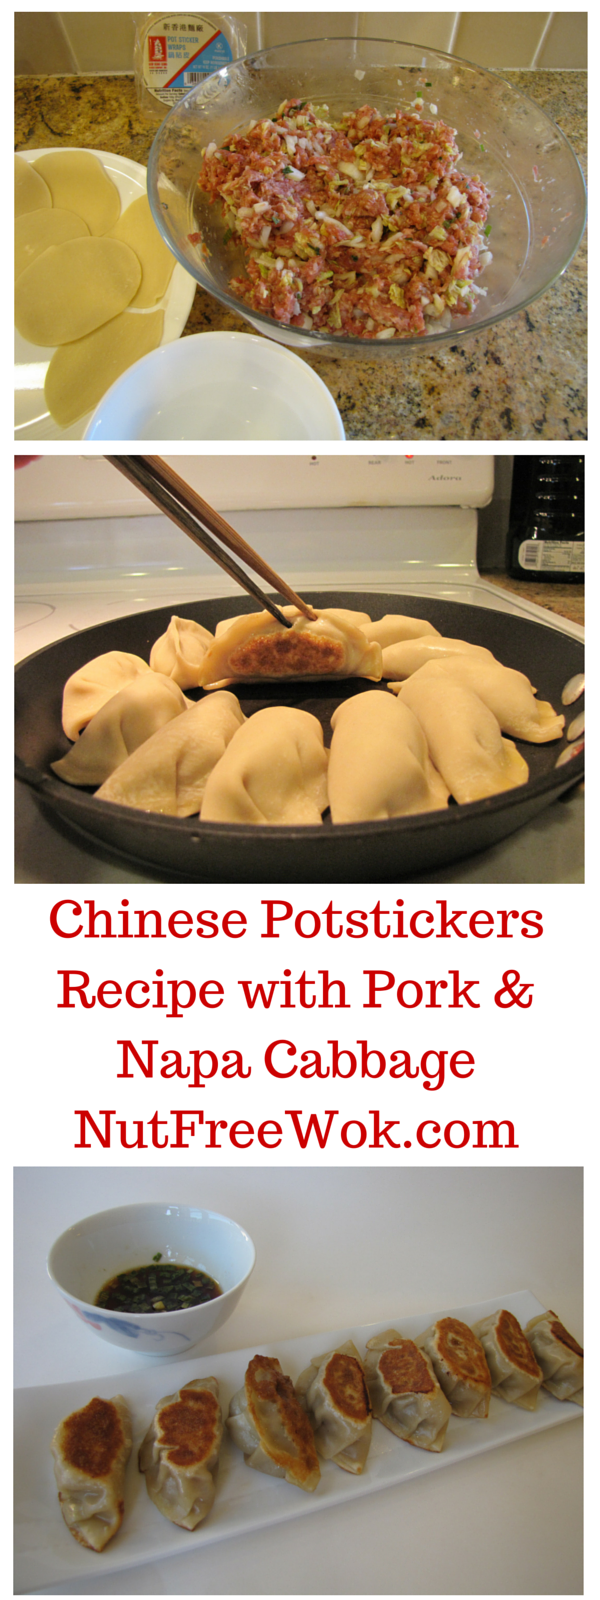 Chinese Potstickers Recipe with Pork & Napa Cabbage NutFreeWok